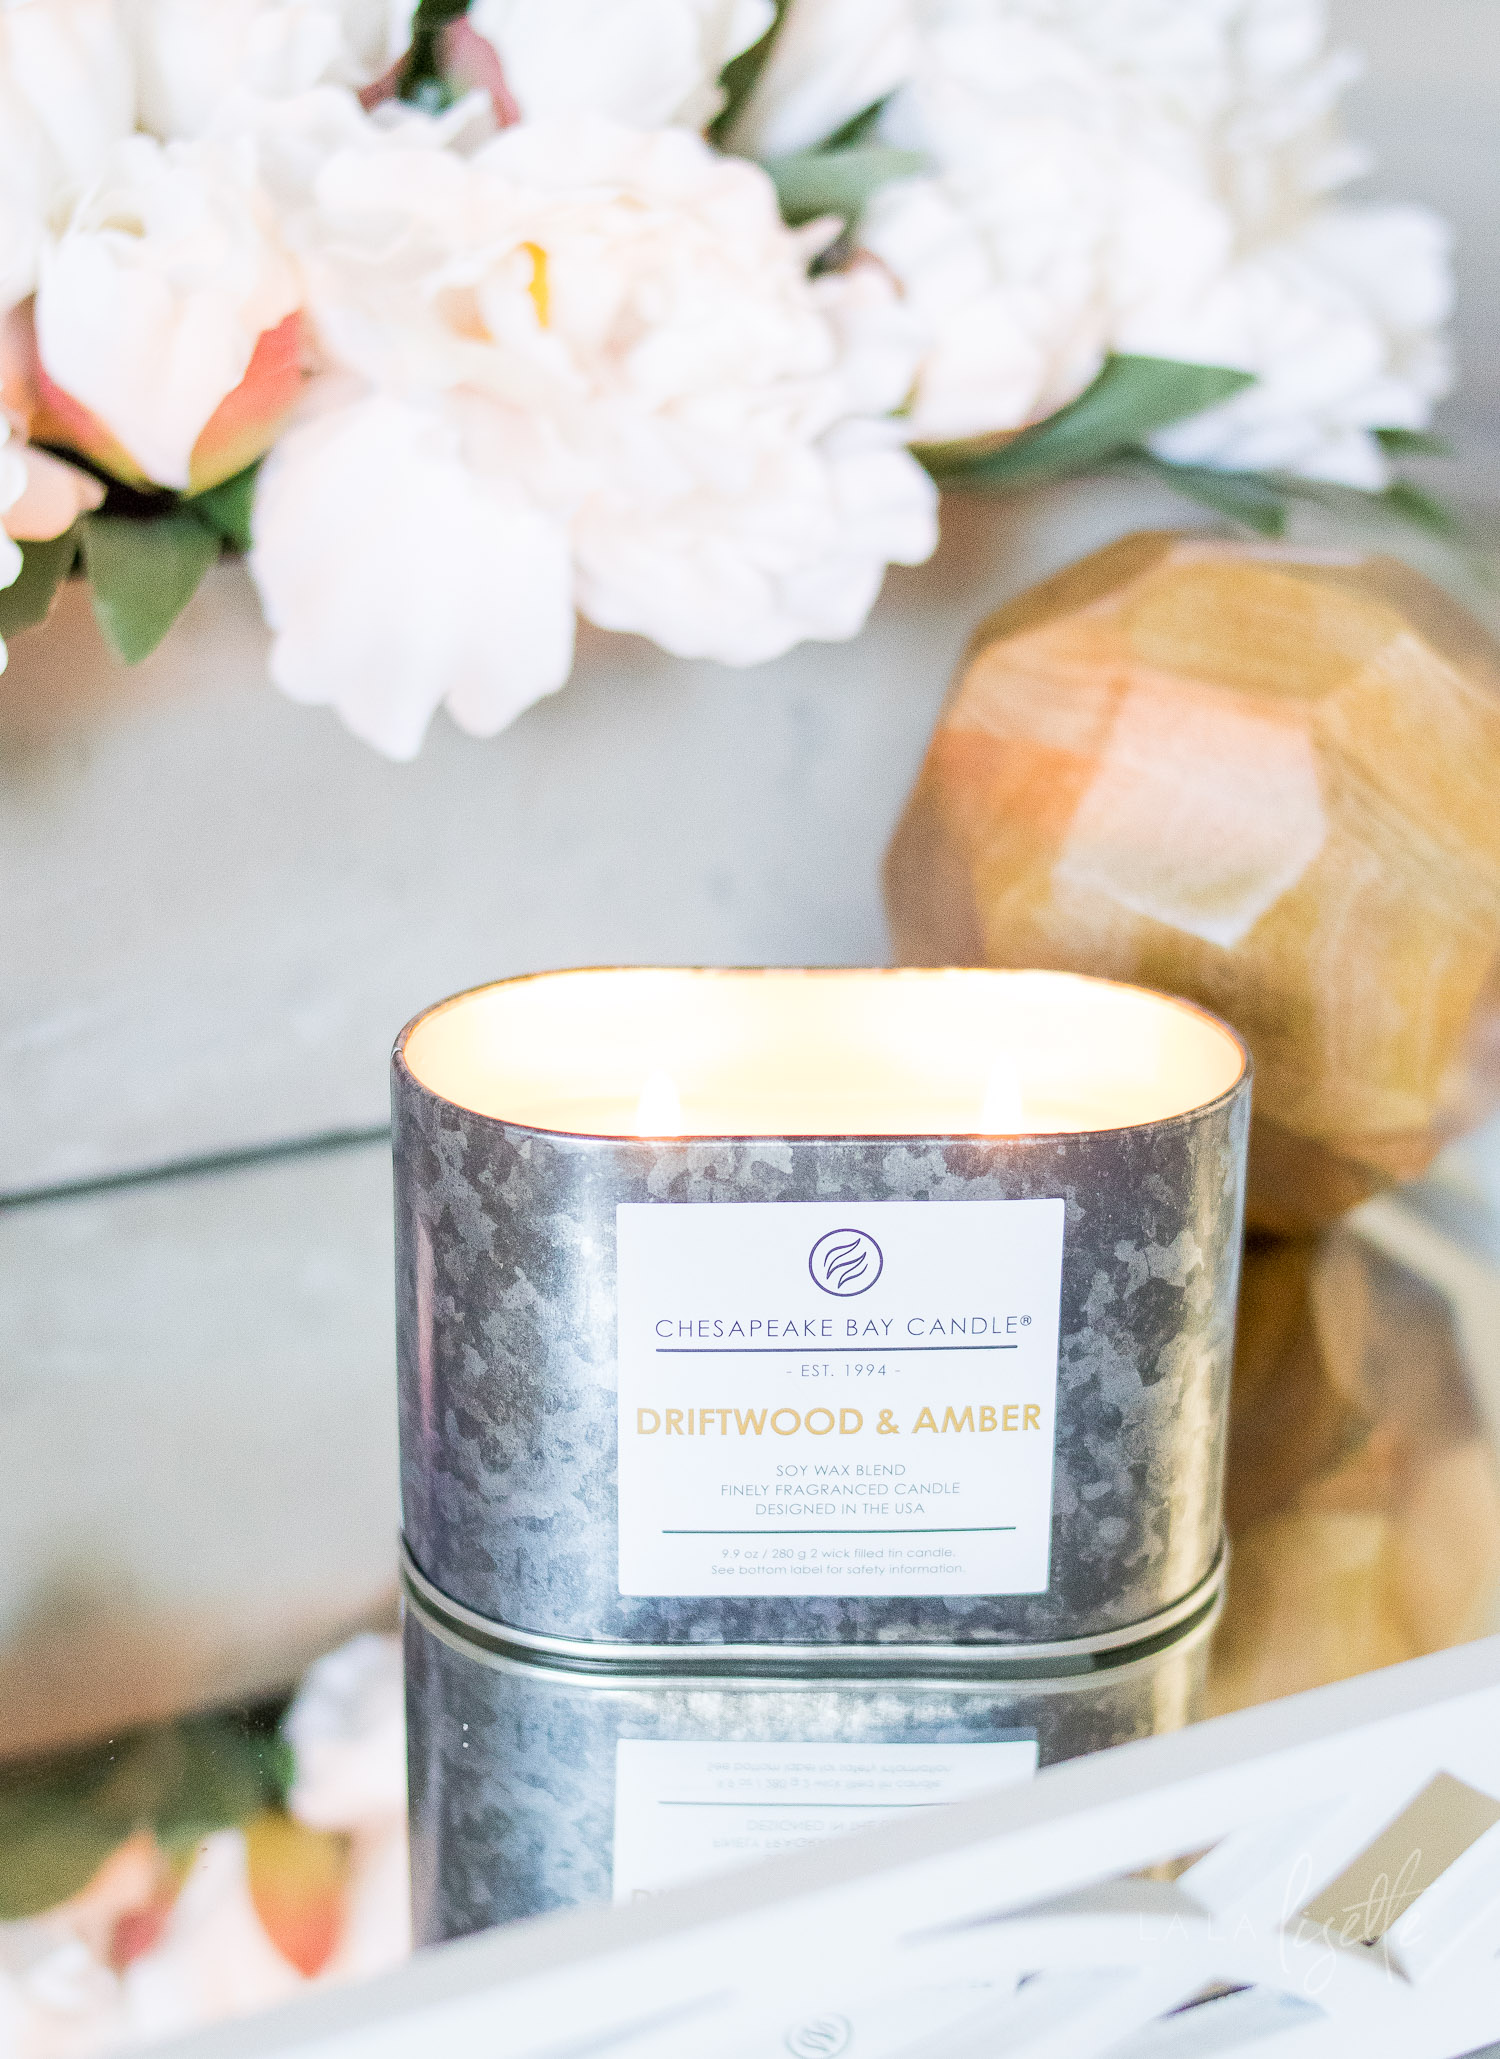 Chesapeake Bay Candle - The Heritage Collection Driftwood Amber lit | La La Lisette